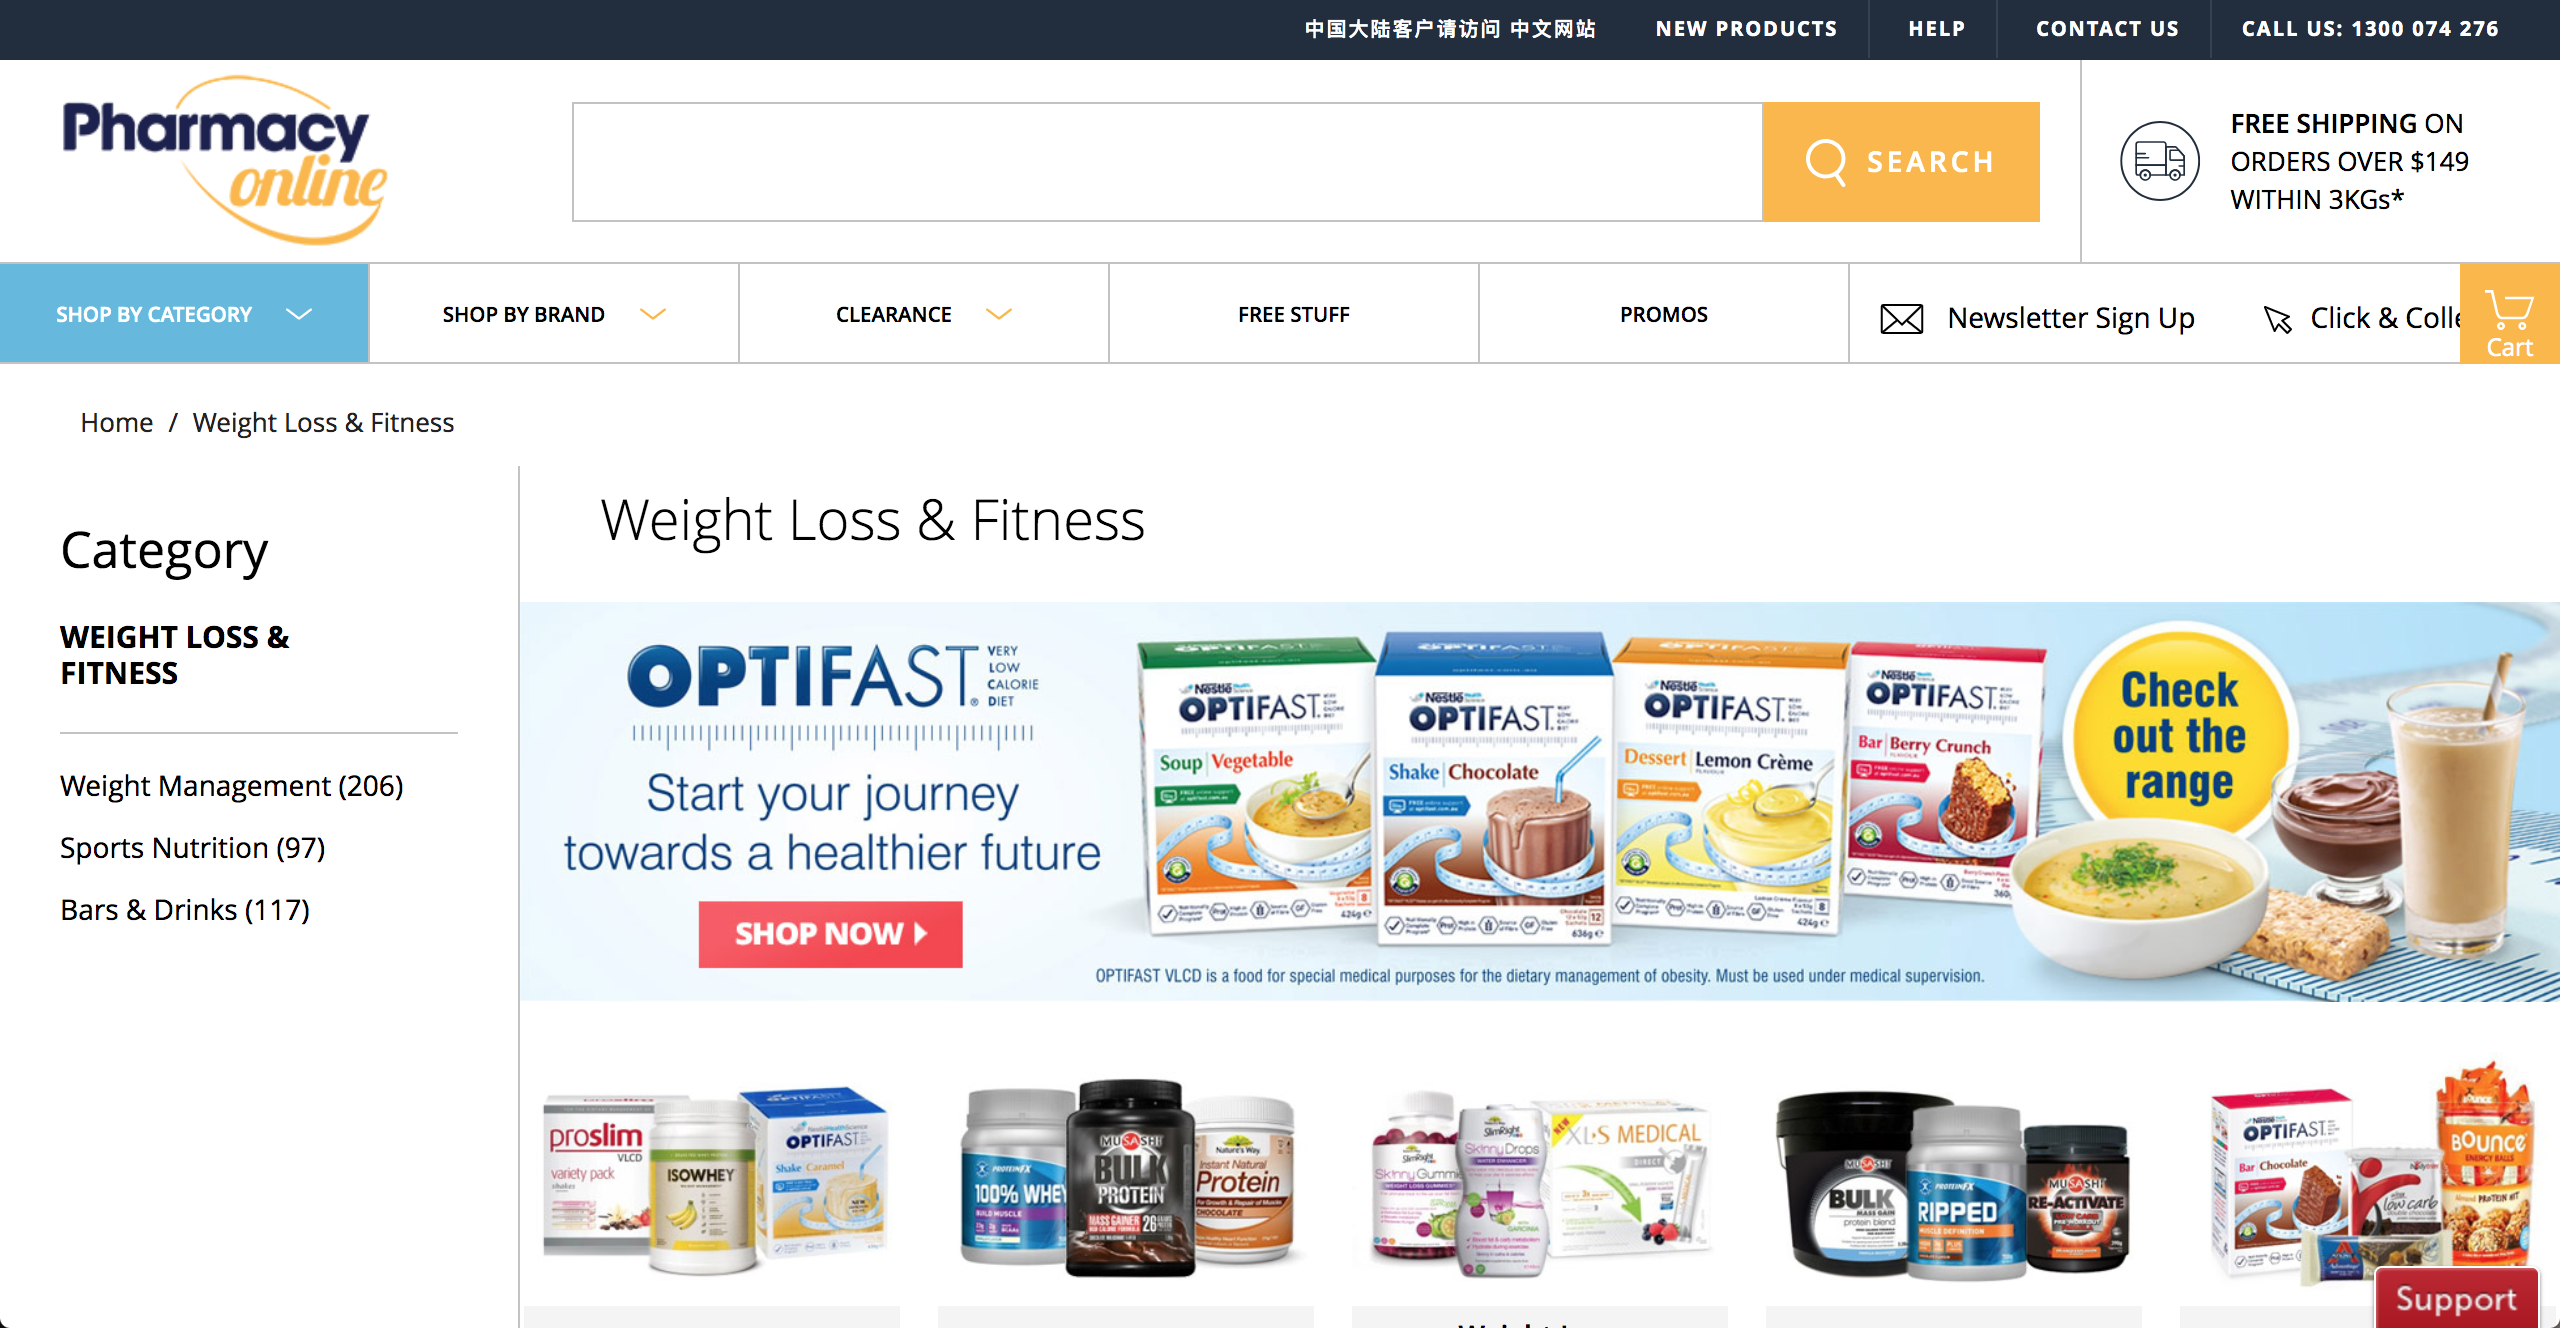 Pharmacy Online weight loss & fitness